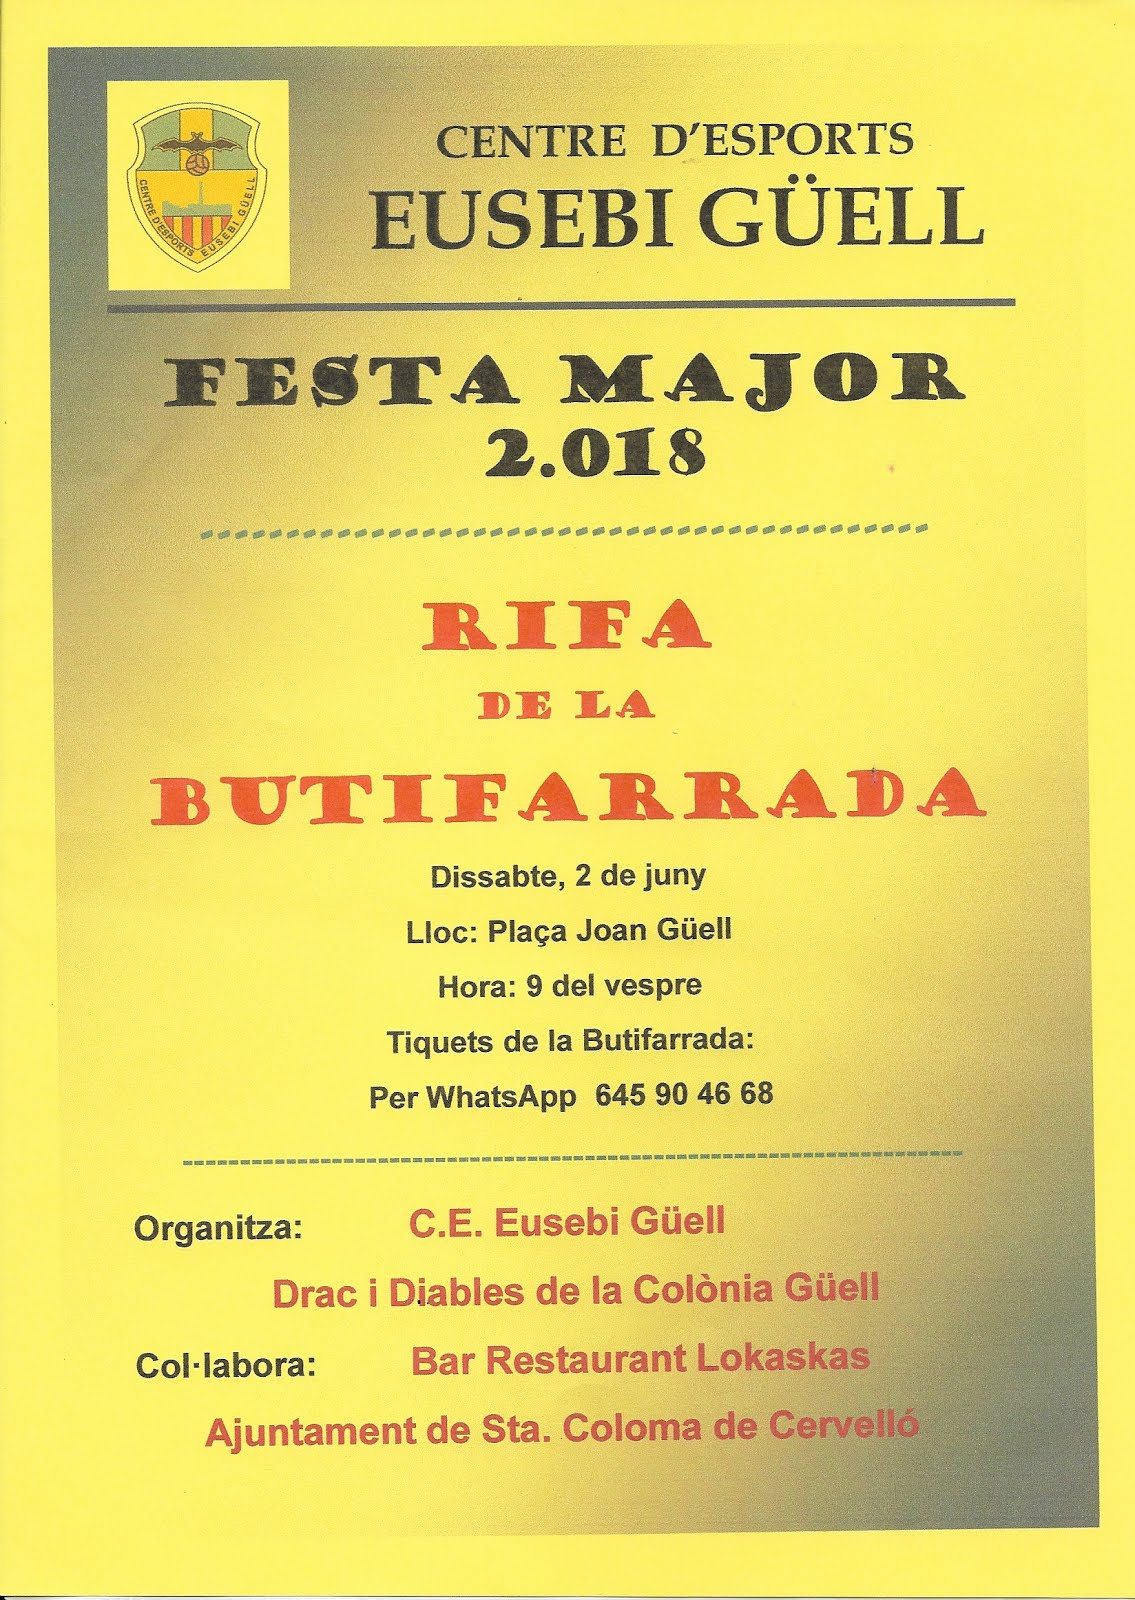 FESTA MAJOR 2018 - RIFA BUTIFARRADA